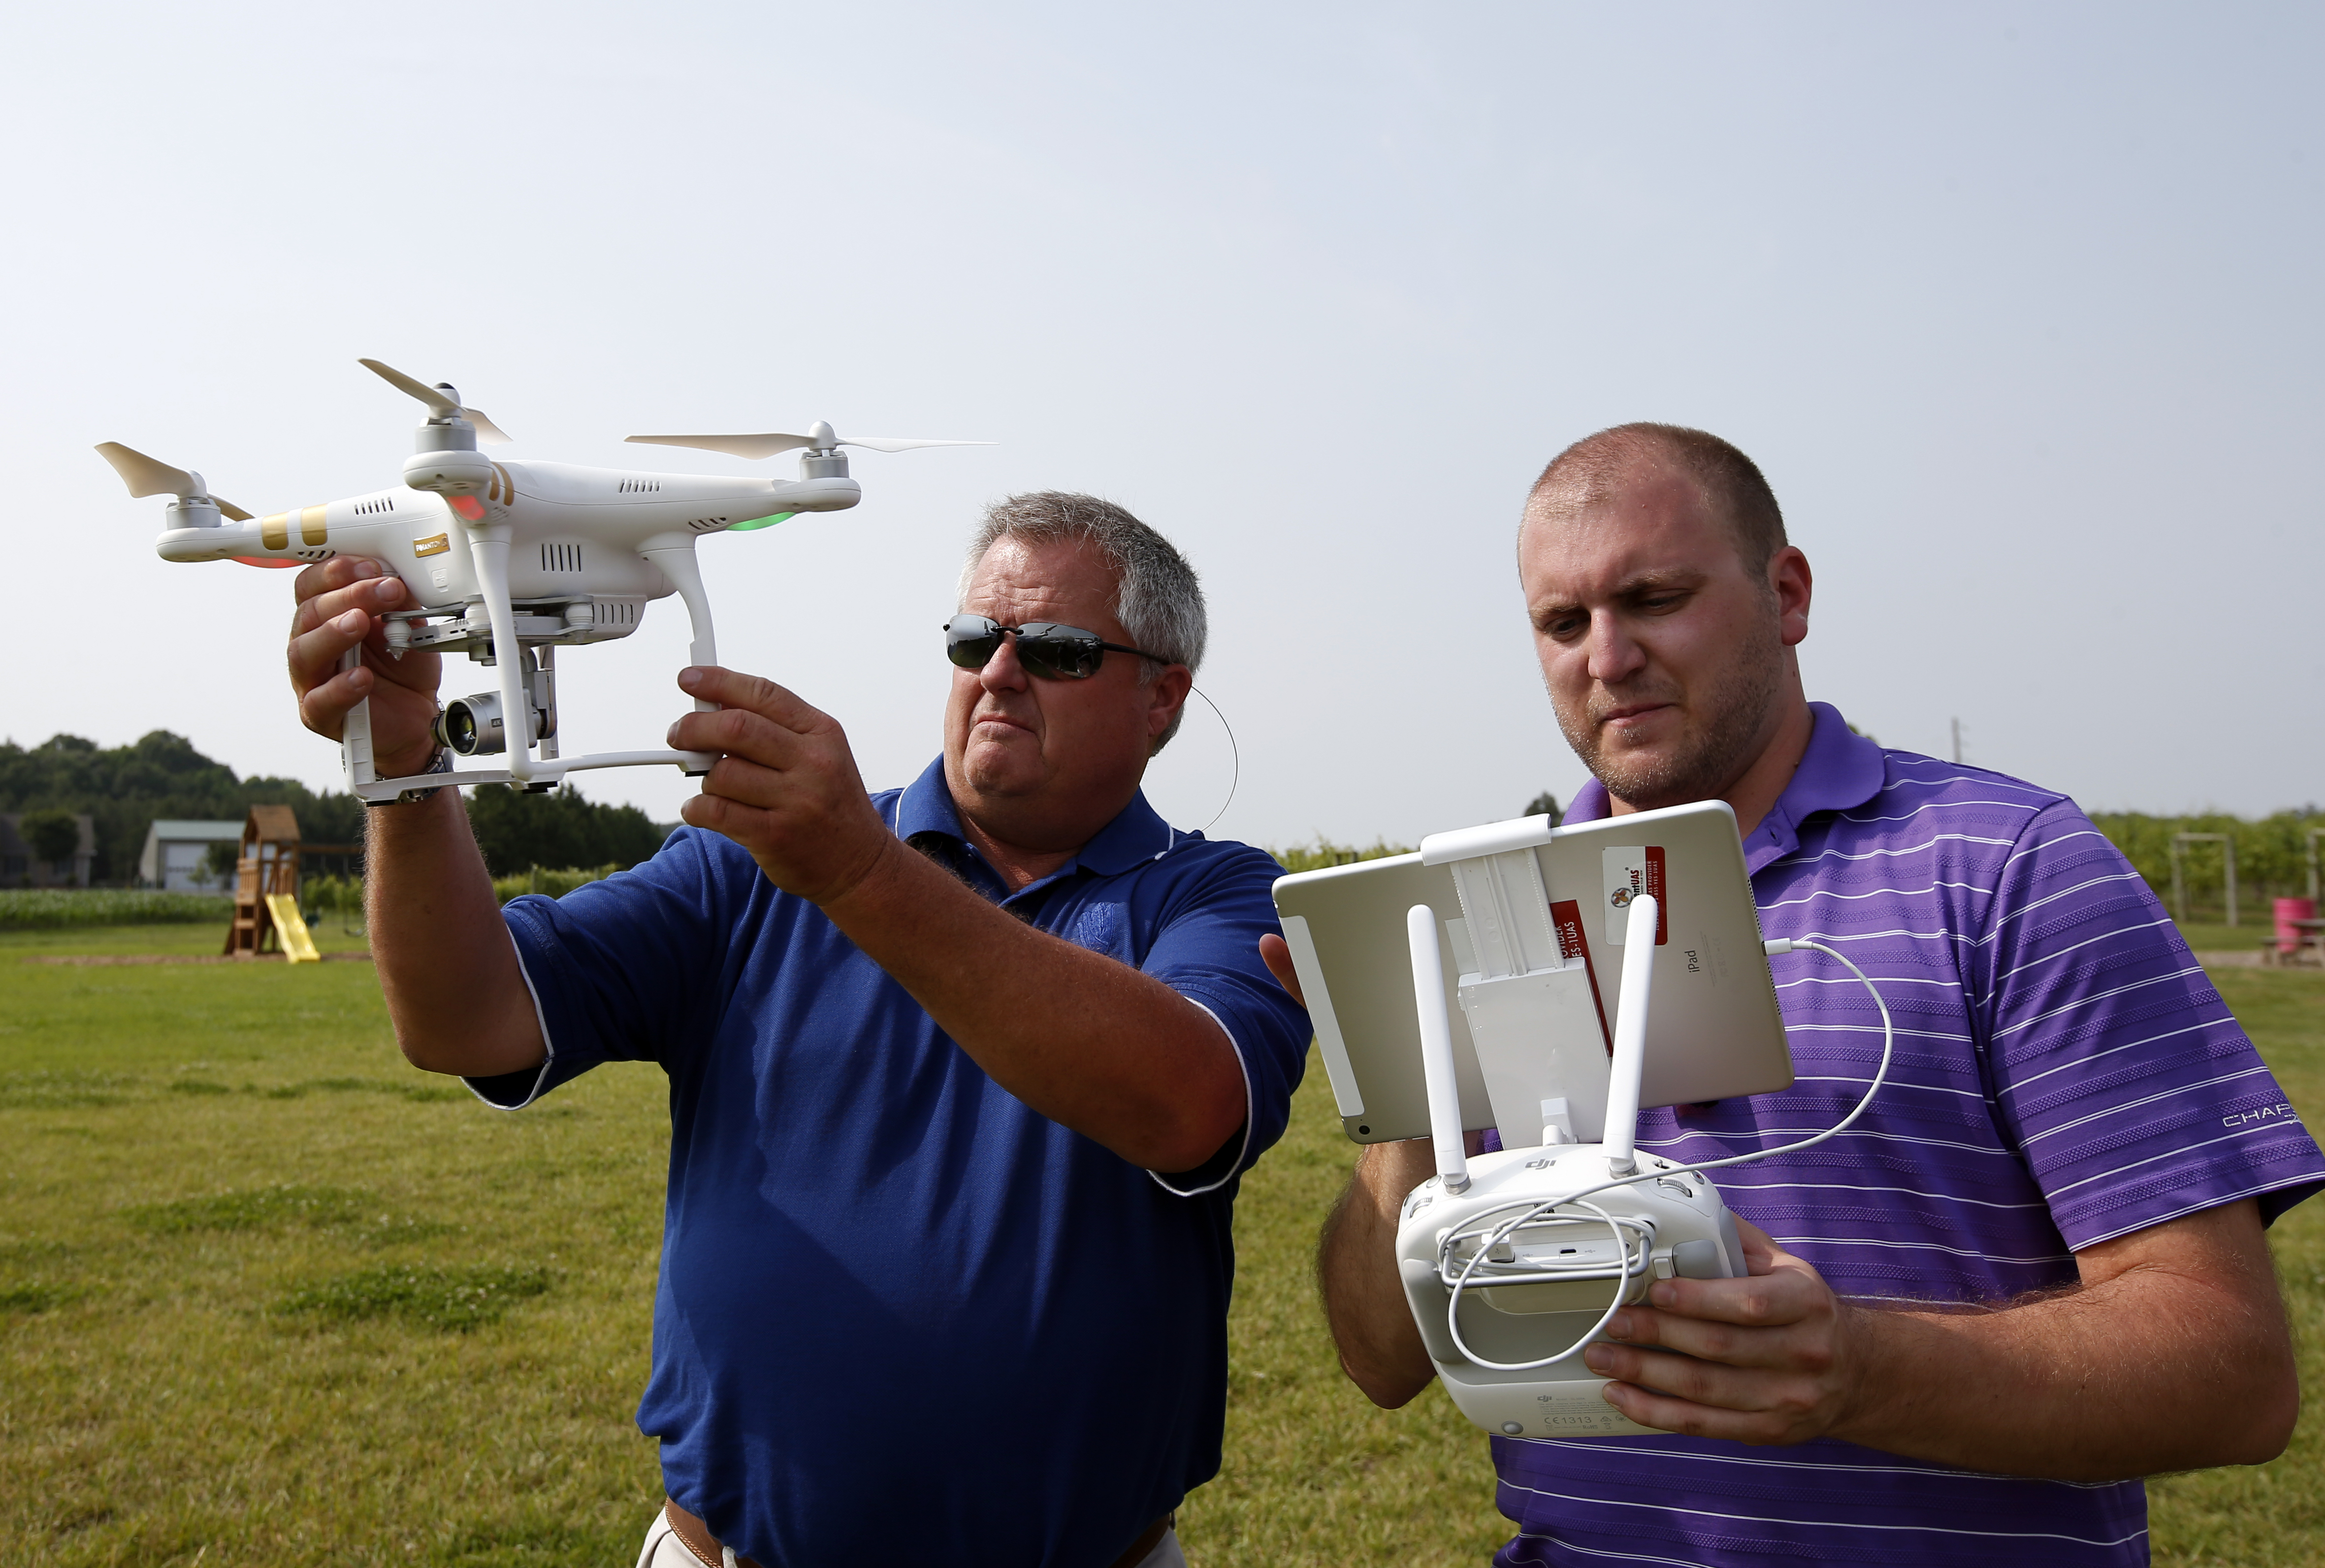 UK to Team Up With NASA to Build Traffic System for Drones